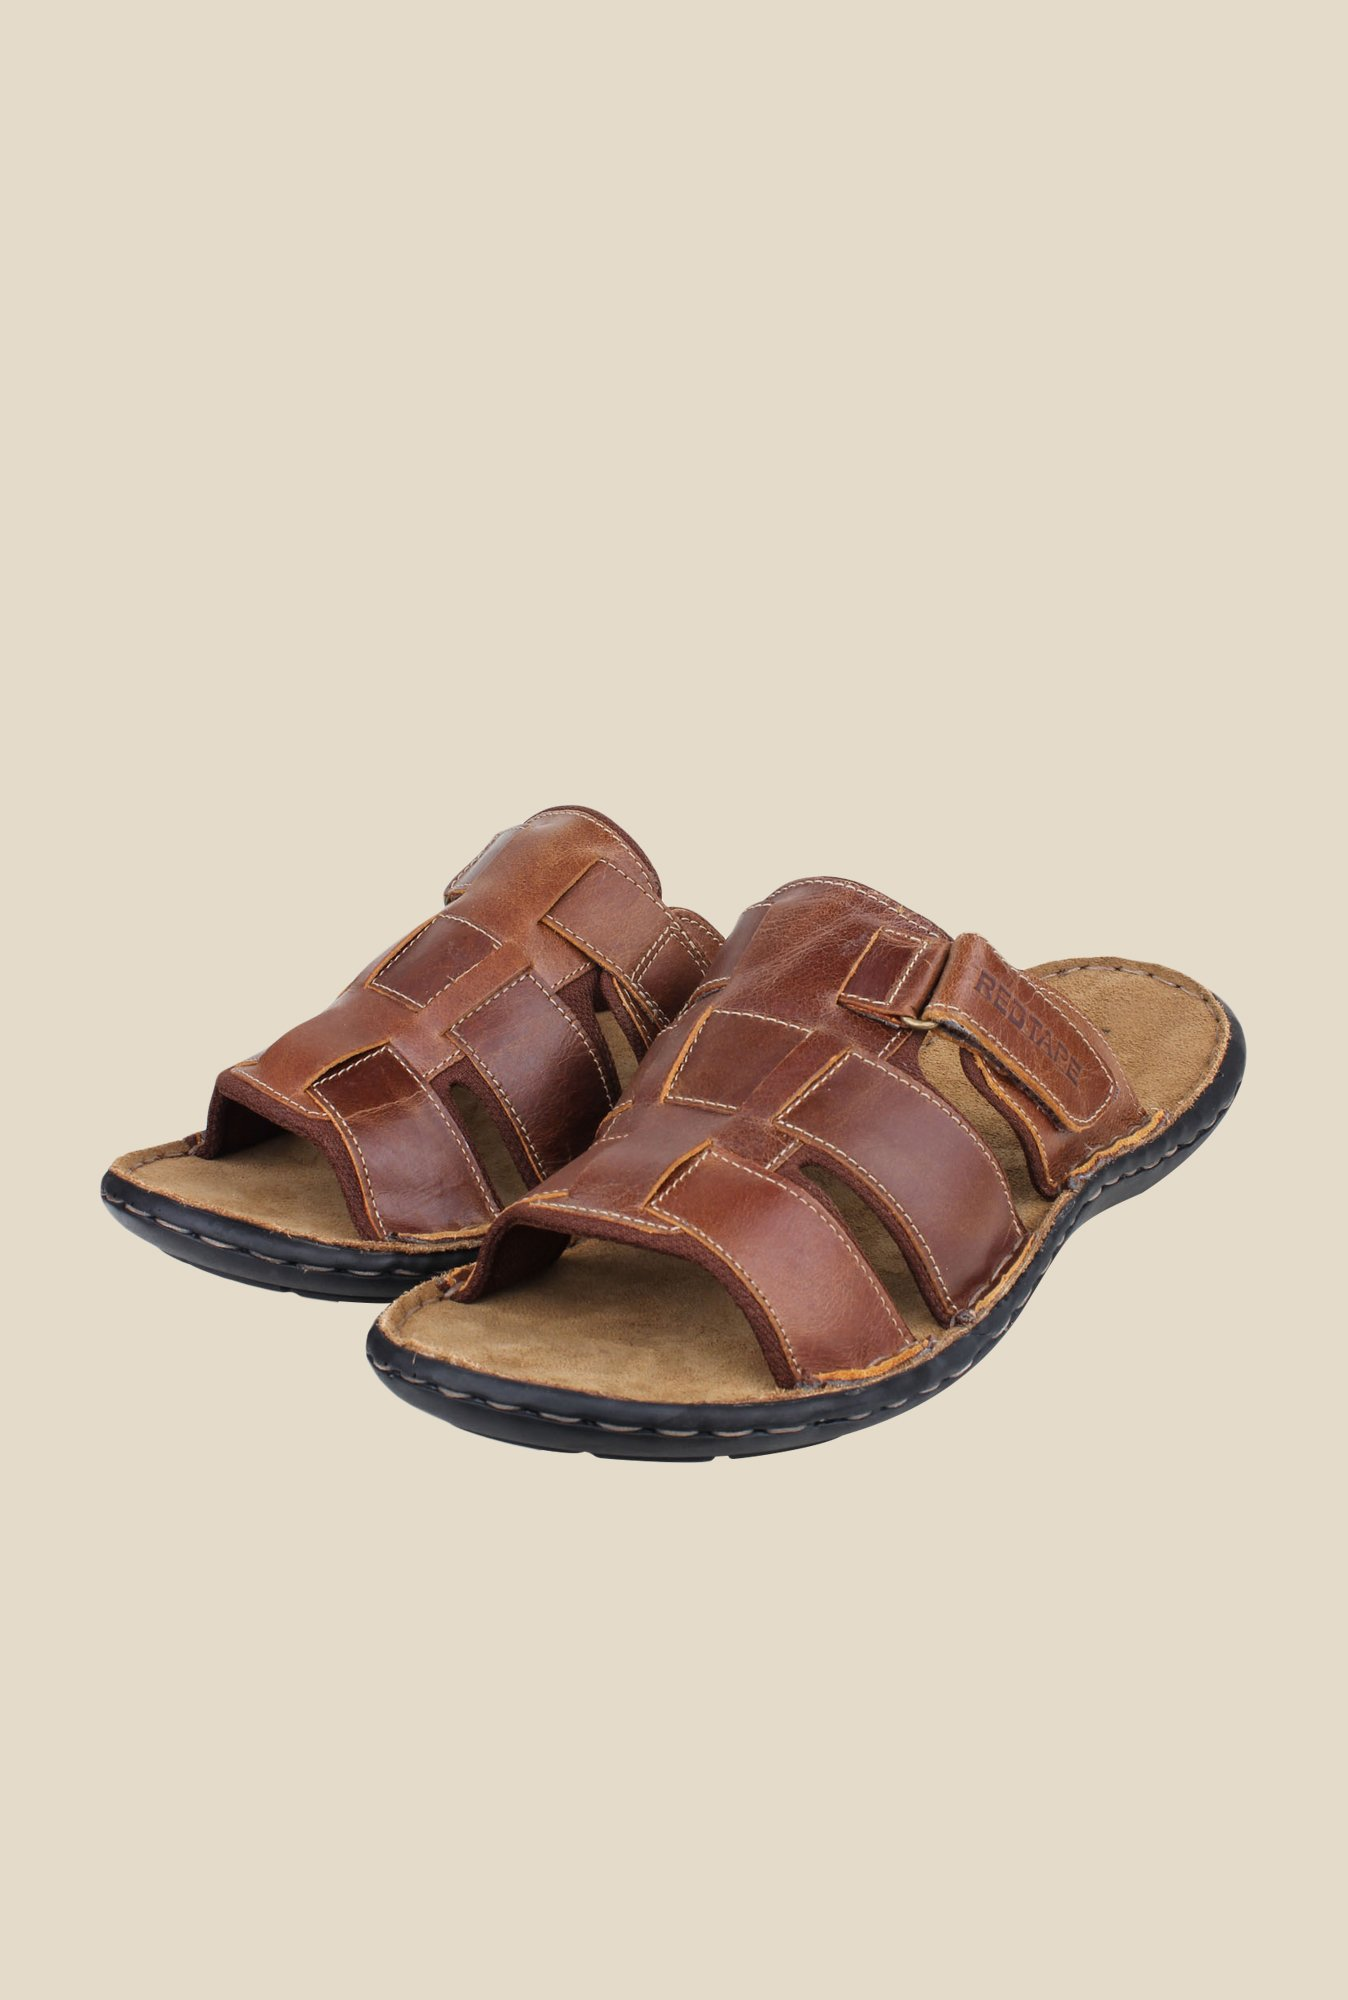 Red Tape Brown Slide Sandals